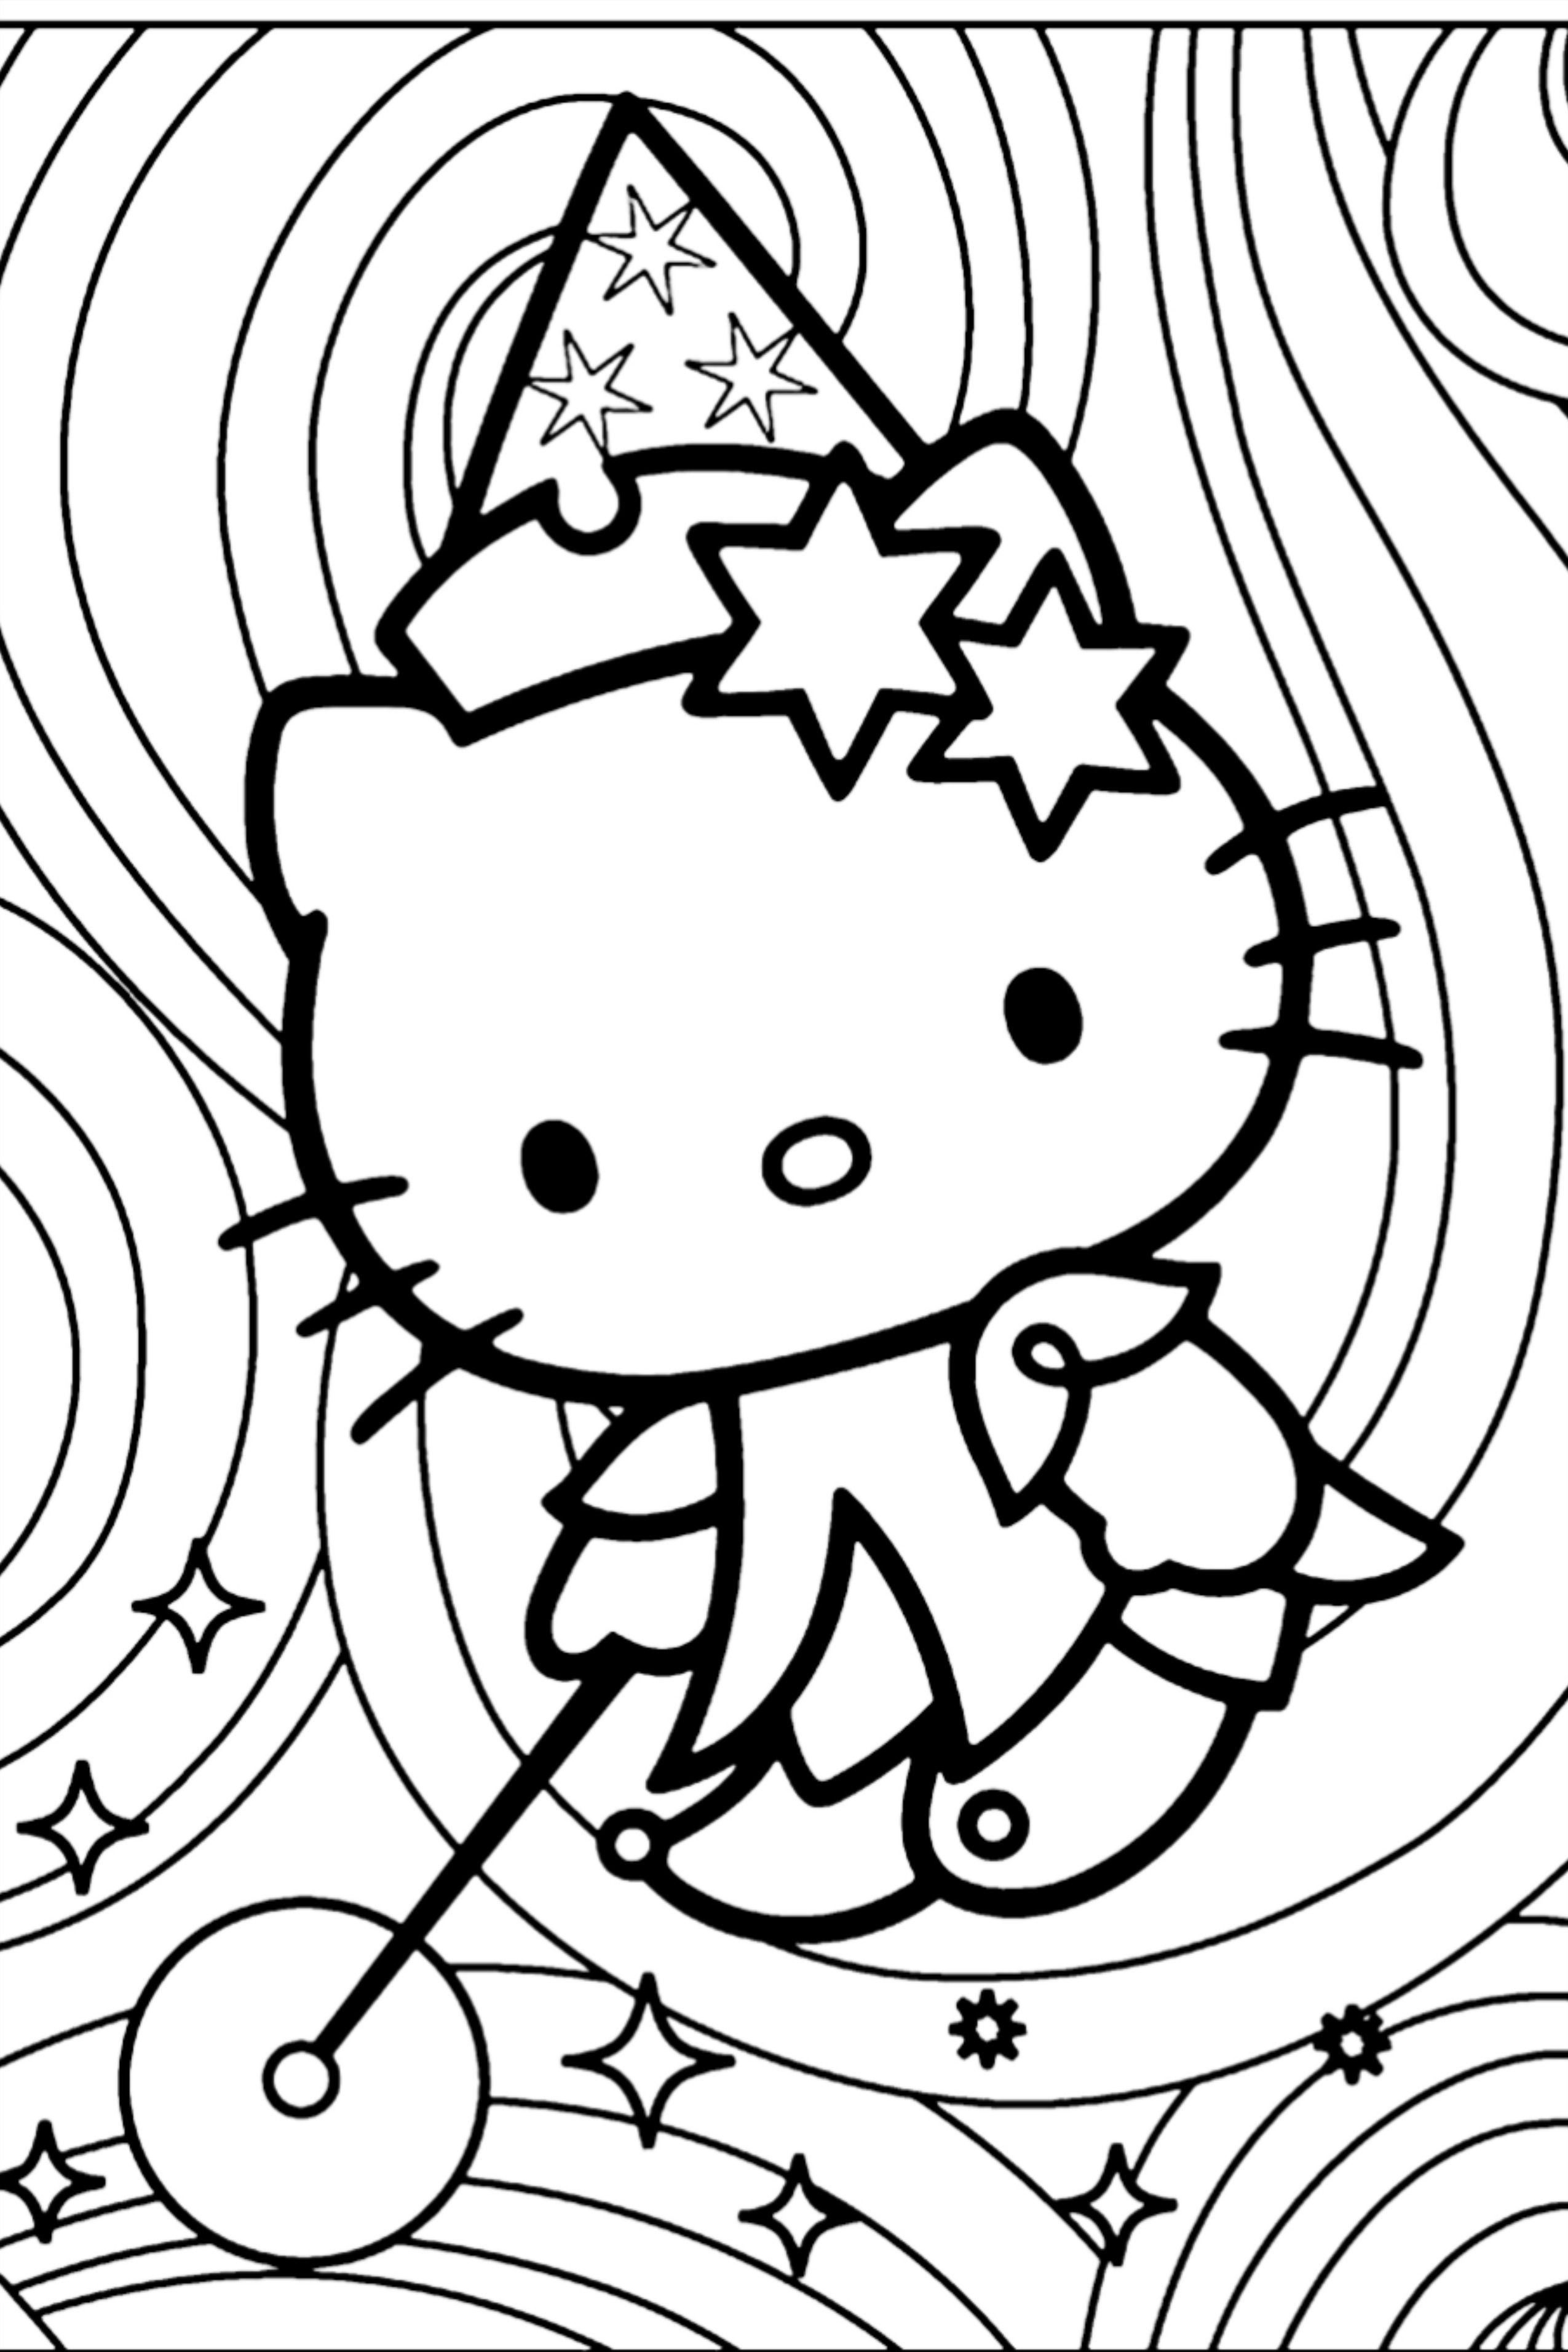 50 Hello Kitty Coloring Pages For Kids Hello Kitty Coloring Hello Kitty Colouring Pages Coloring Pages For Kids